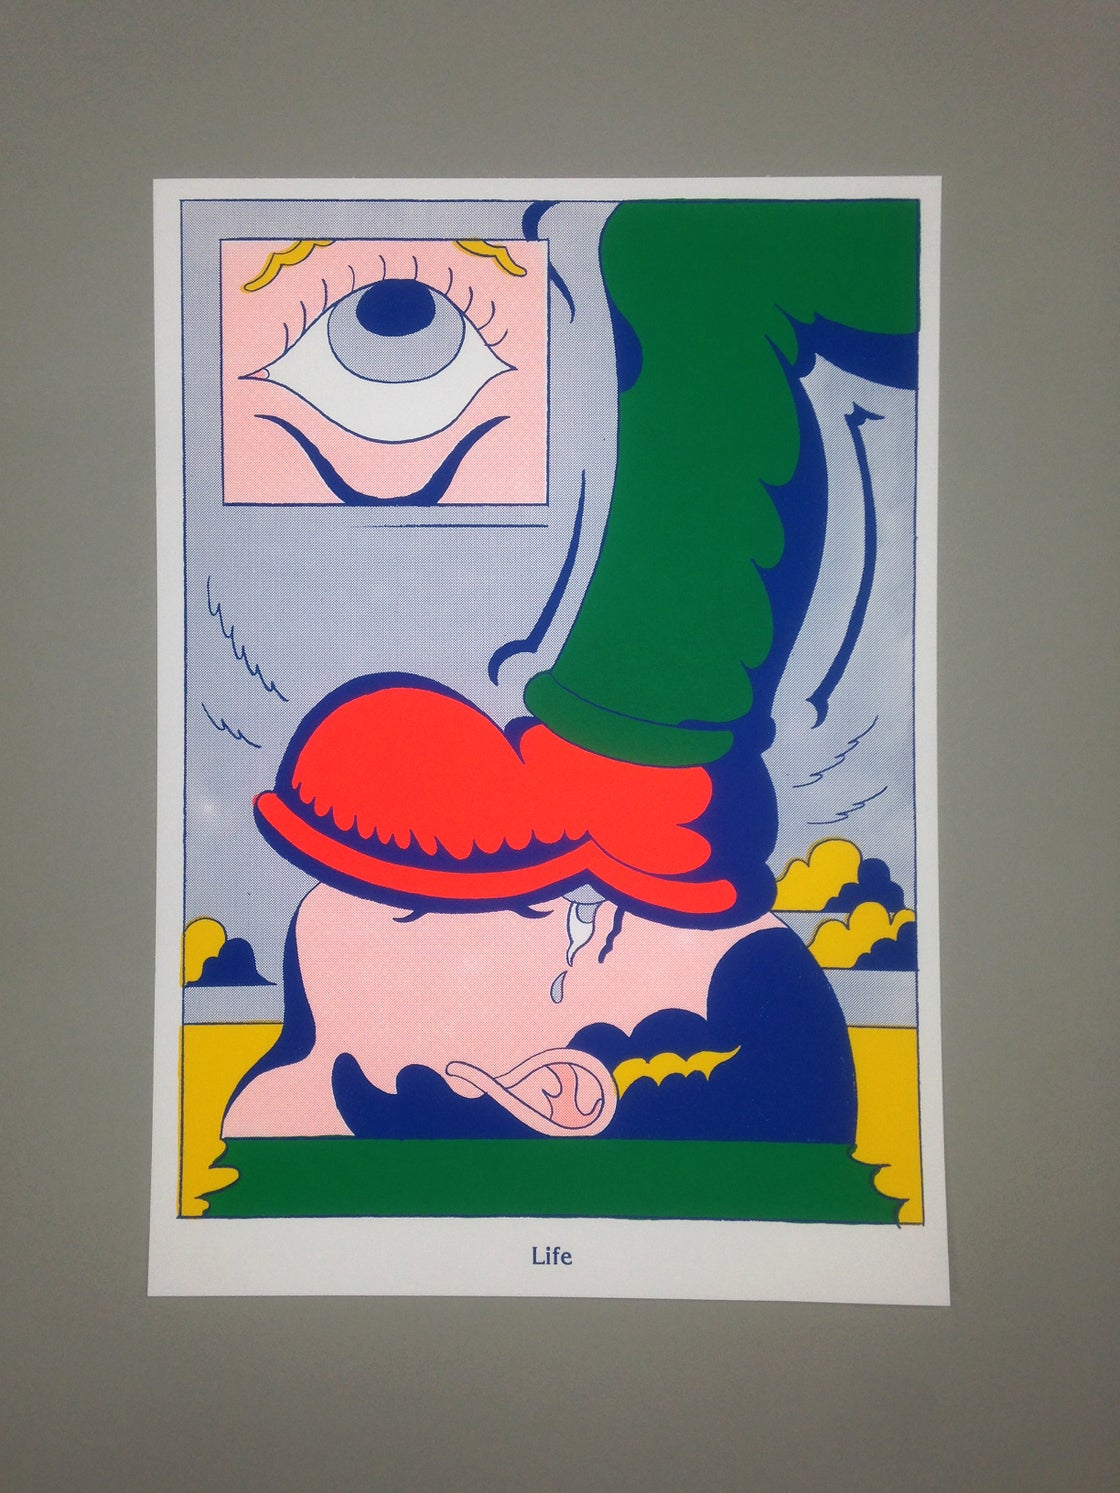 Image of Life (4 color screenprint - Edition of 25)